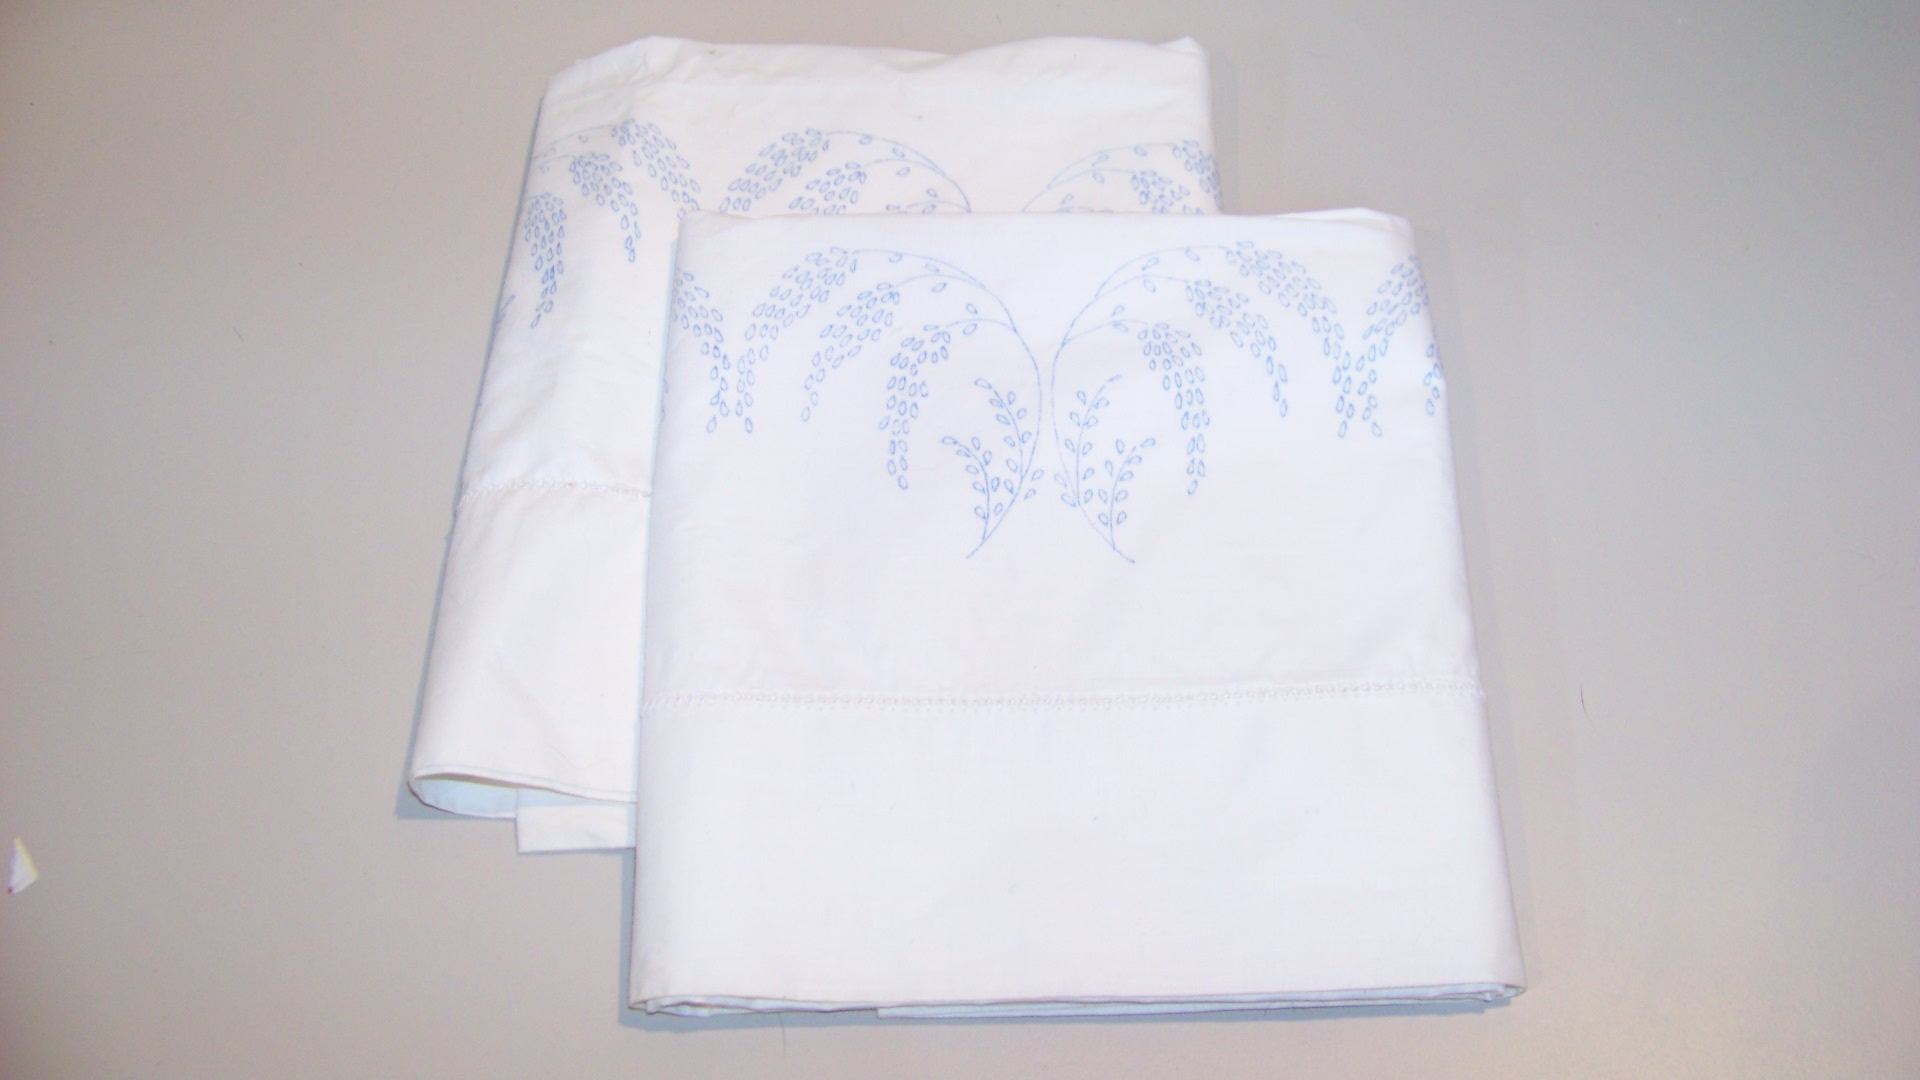 Vintage Vine Flowers Embroidery Pillow Cases DIY Free Shipping   eBay HD Wallpaper